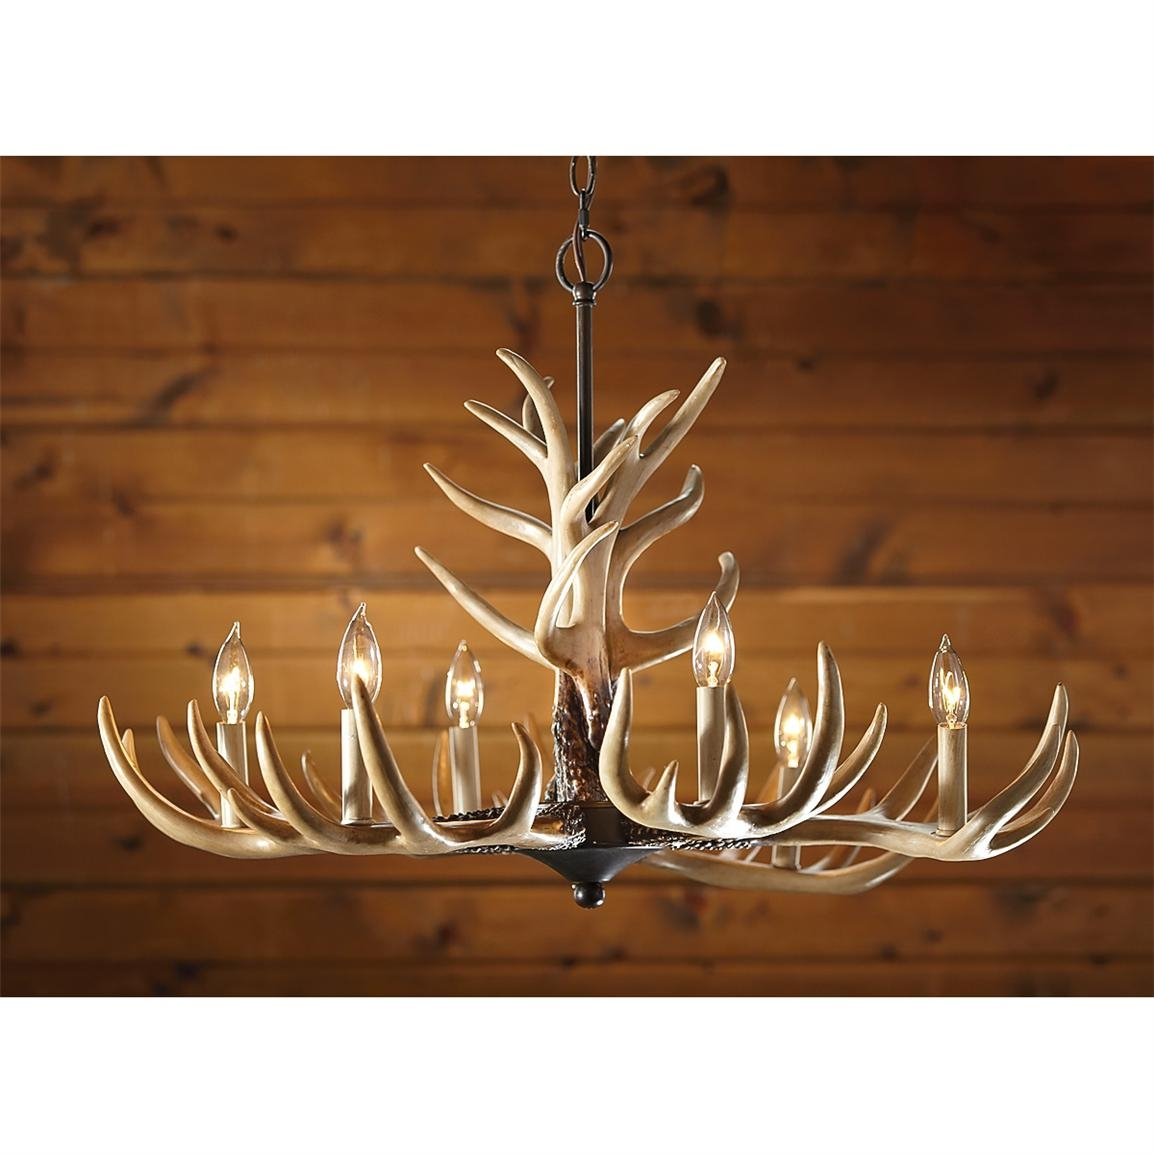 6 Light Antler Chandelier 210035 Lighting At Sportsmans Guide With Regard To Antler Chandeliers (View 11 of 15)